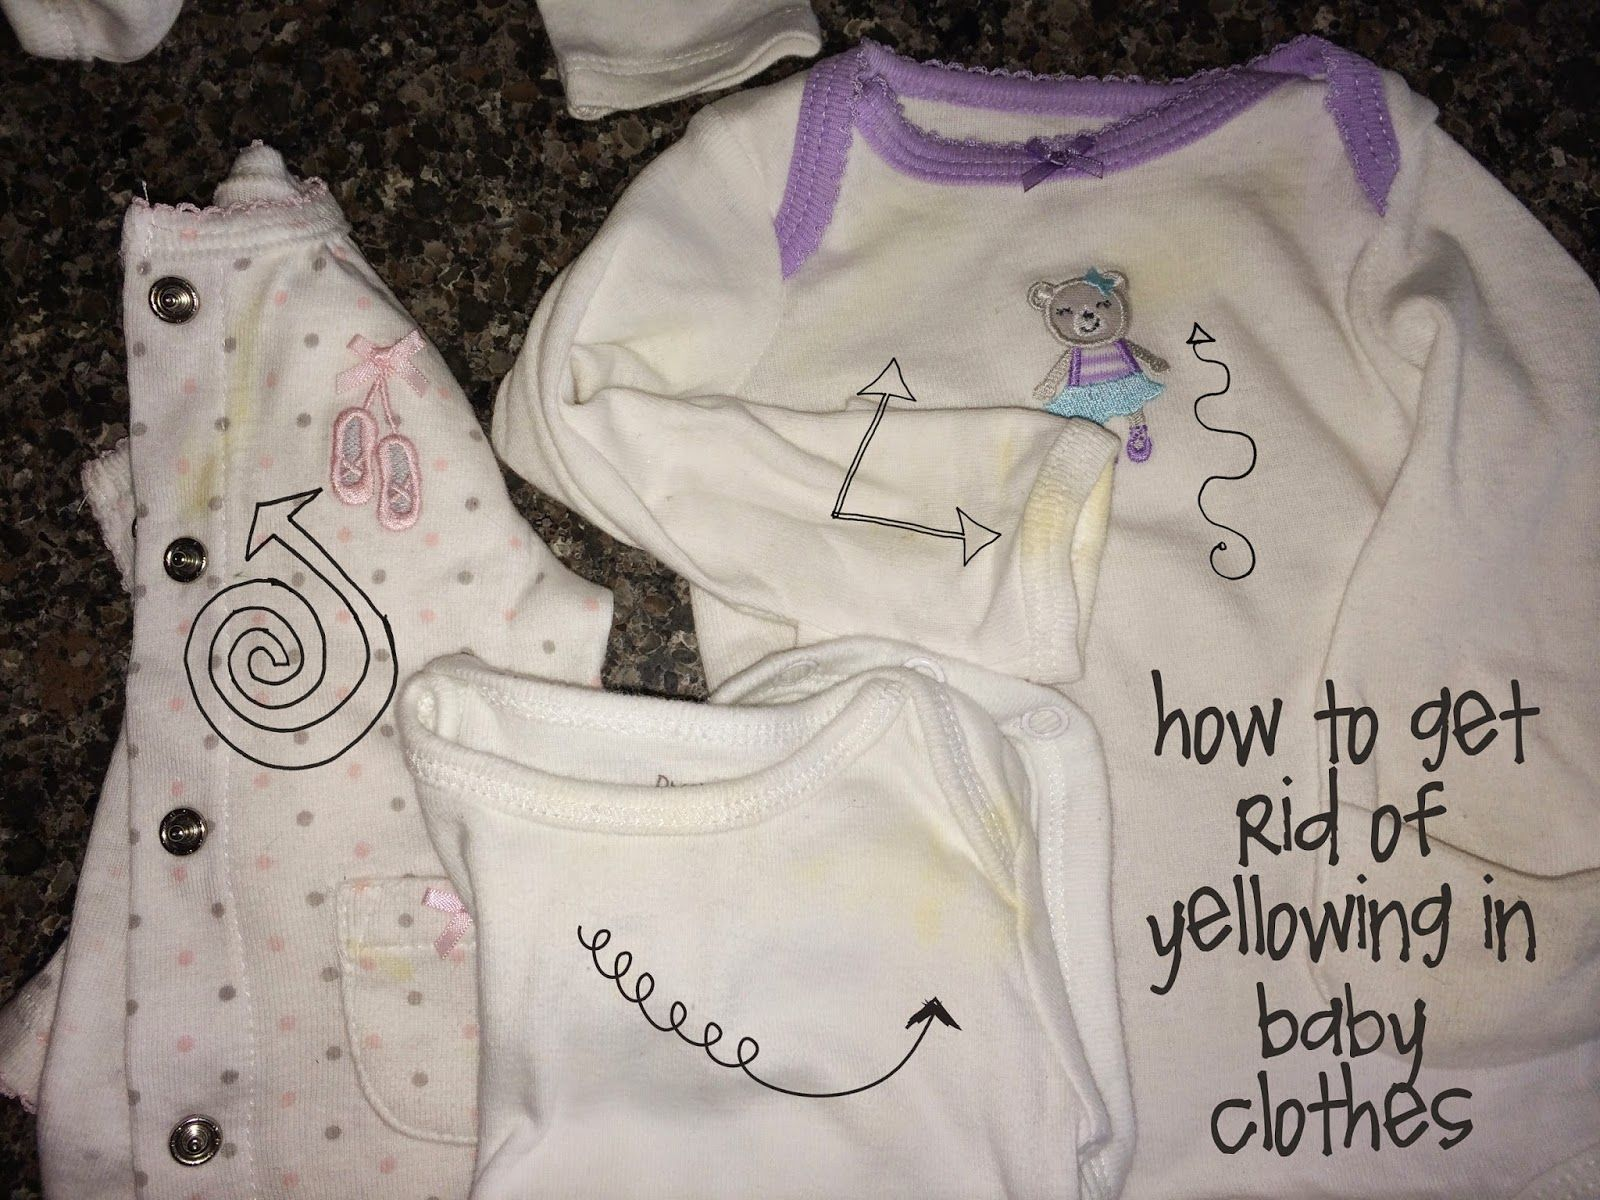 how to rid of yellow staining in baby clothes 4 tbsp hydrogen